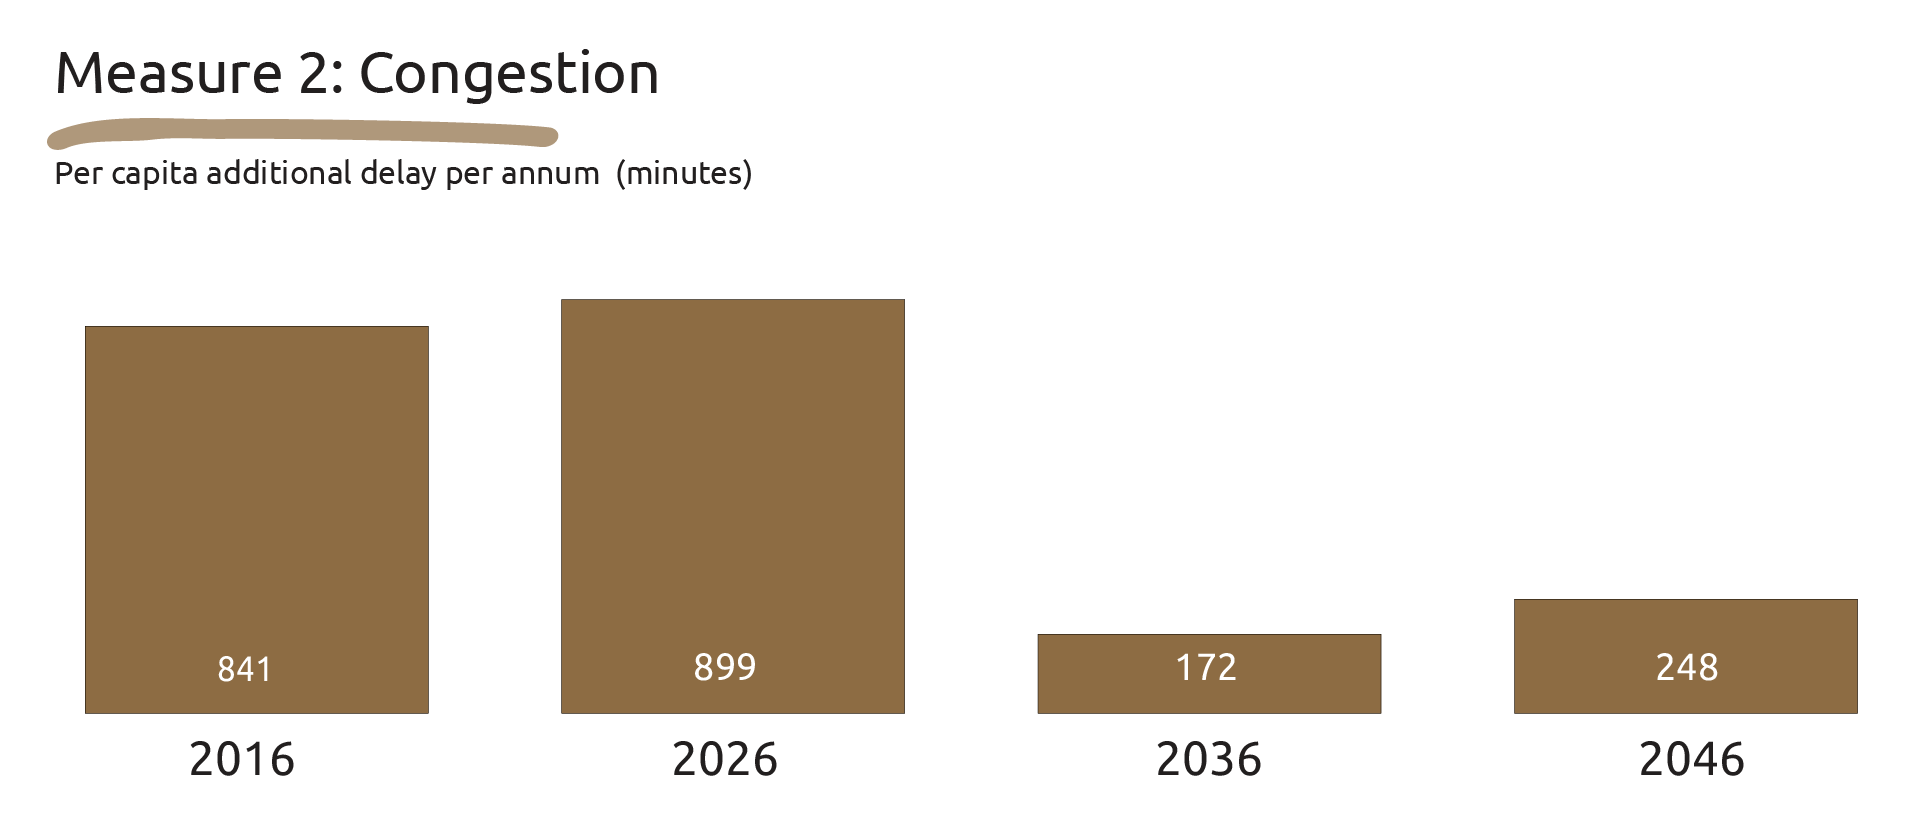 Graphic showing the per capita additional delay per annum in minutes: 2016 - 841, 2026 - 899, 2036 - 172 and 2046 - 248.